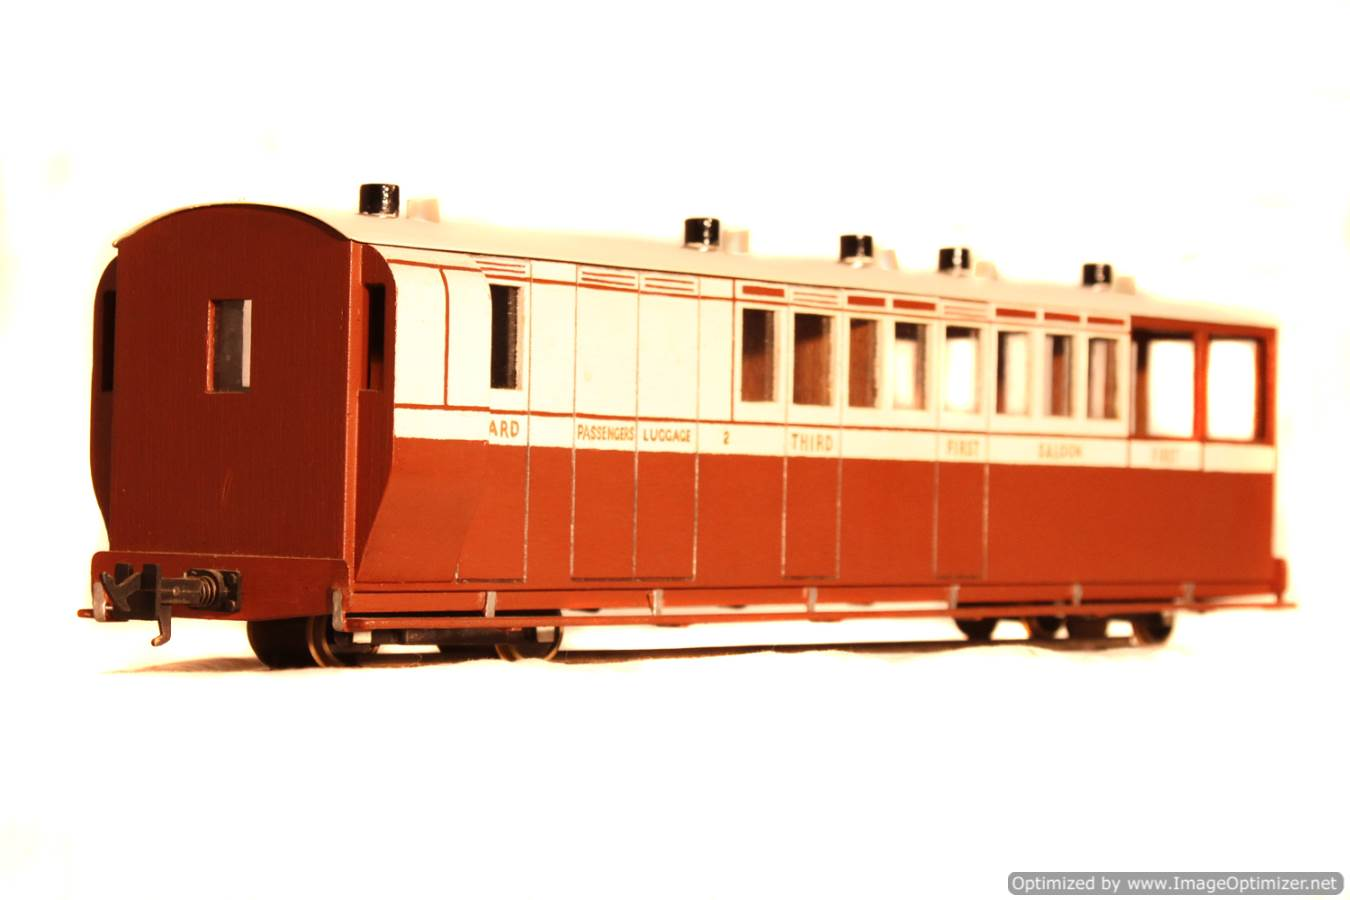 test L&B 32mm Garden Rail live steam locomotive carriages for sale 02 Optimized